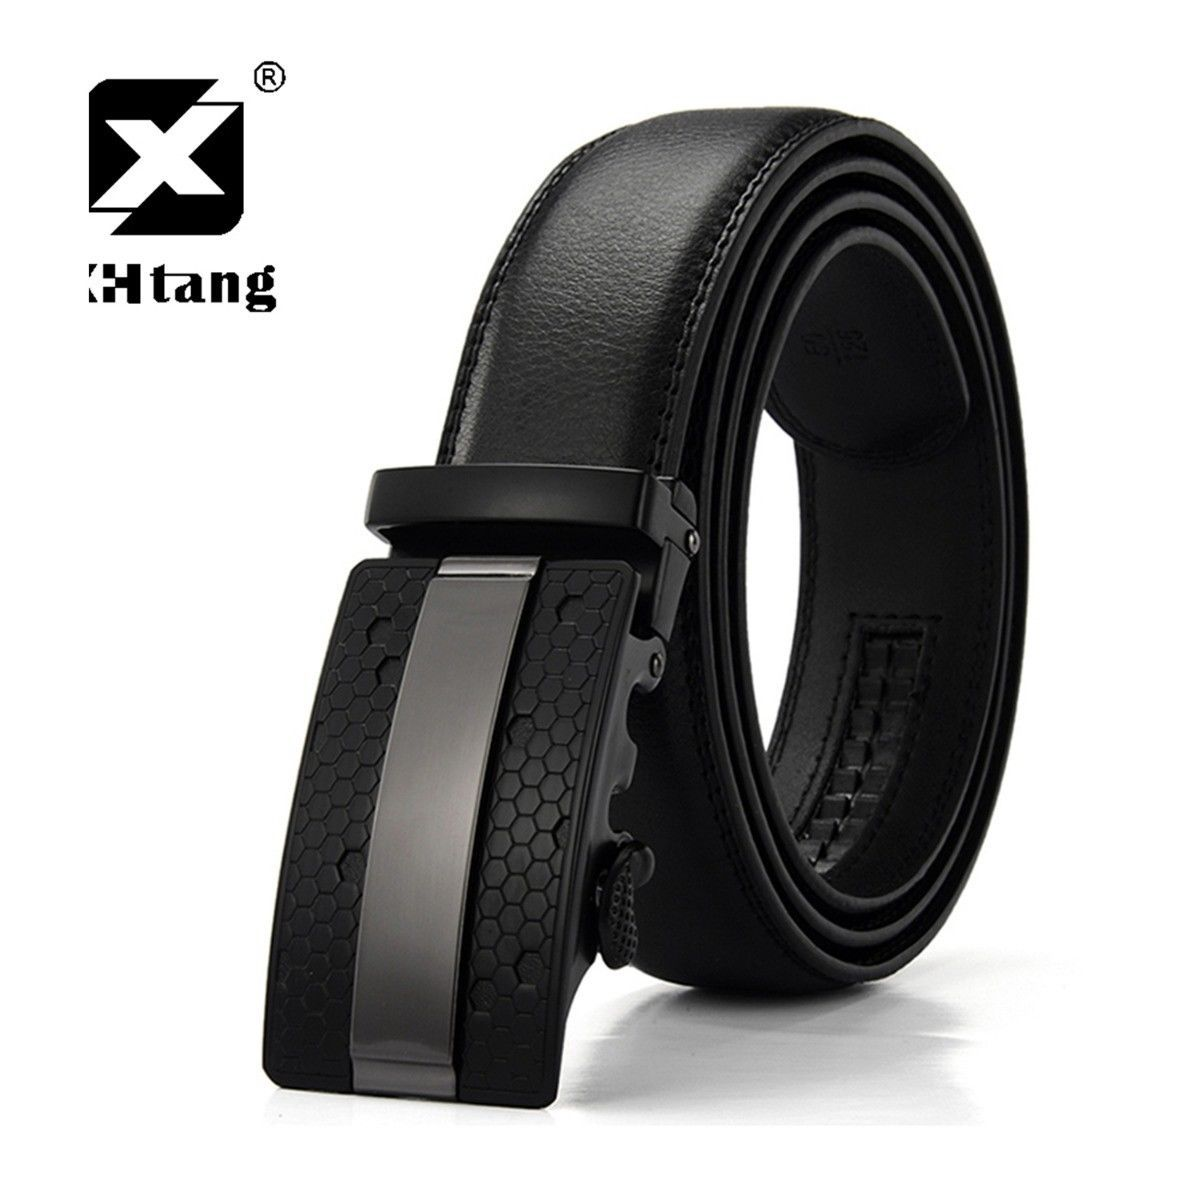 XHTang Fashion Men/'s Automatic Buckle Real Leather Ratchet Belt Waistband Jeans